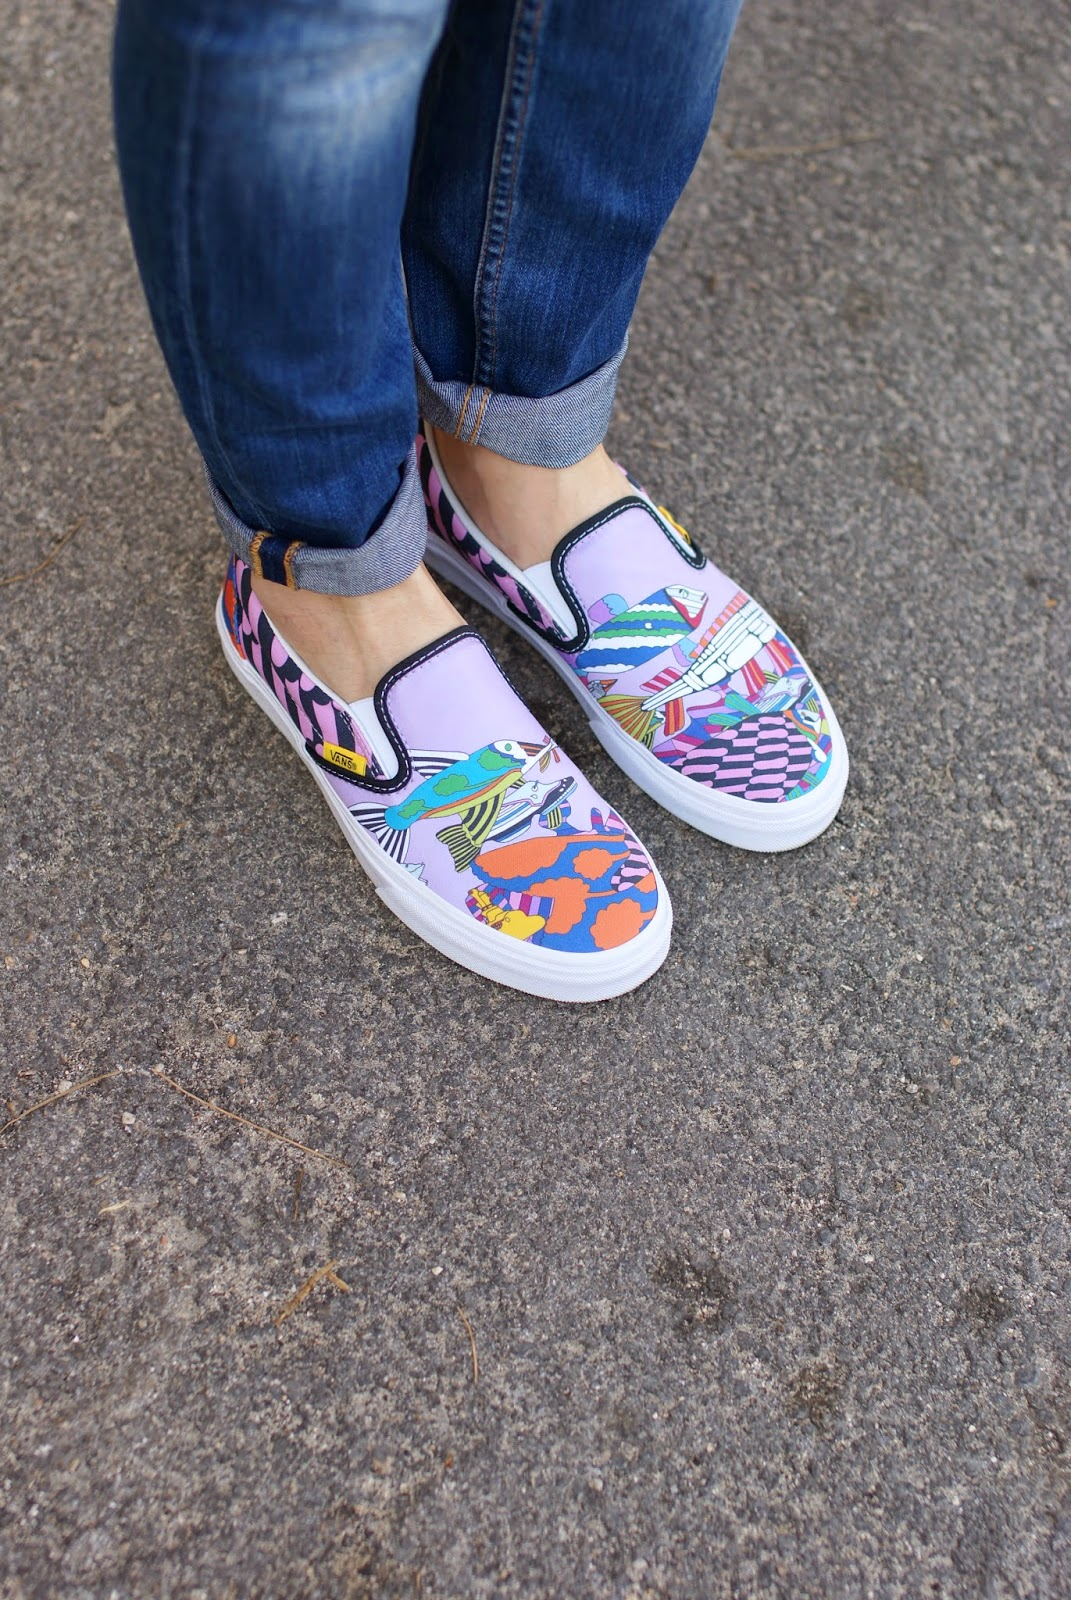 Vans slip-on sneakers, Vans the beatles yellow submarine sneakers, Fashion and Cookies, fashion blogger